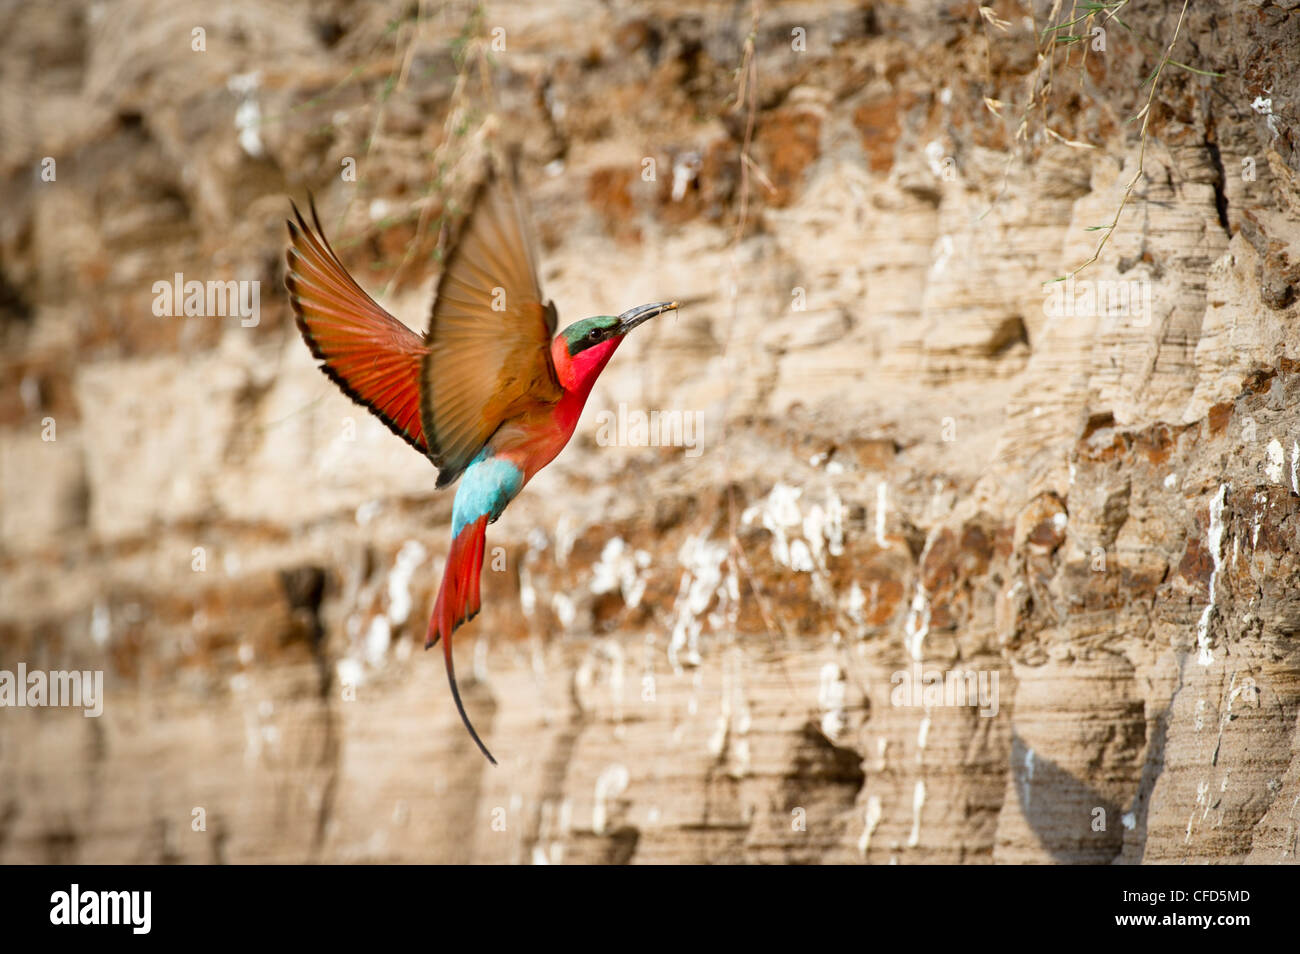 Southern Carmine Bee-eaters returning to nest holes. Banks of the Luangwa River. South Luangwa National Park, Zambia - Stock Image